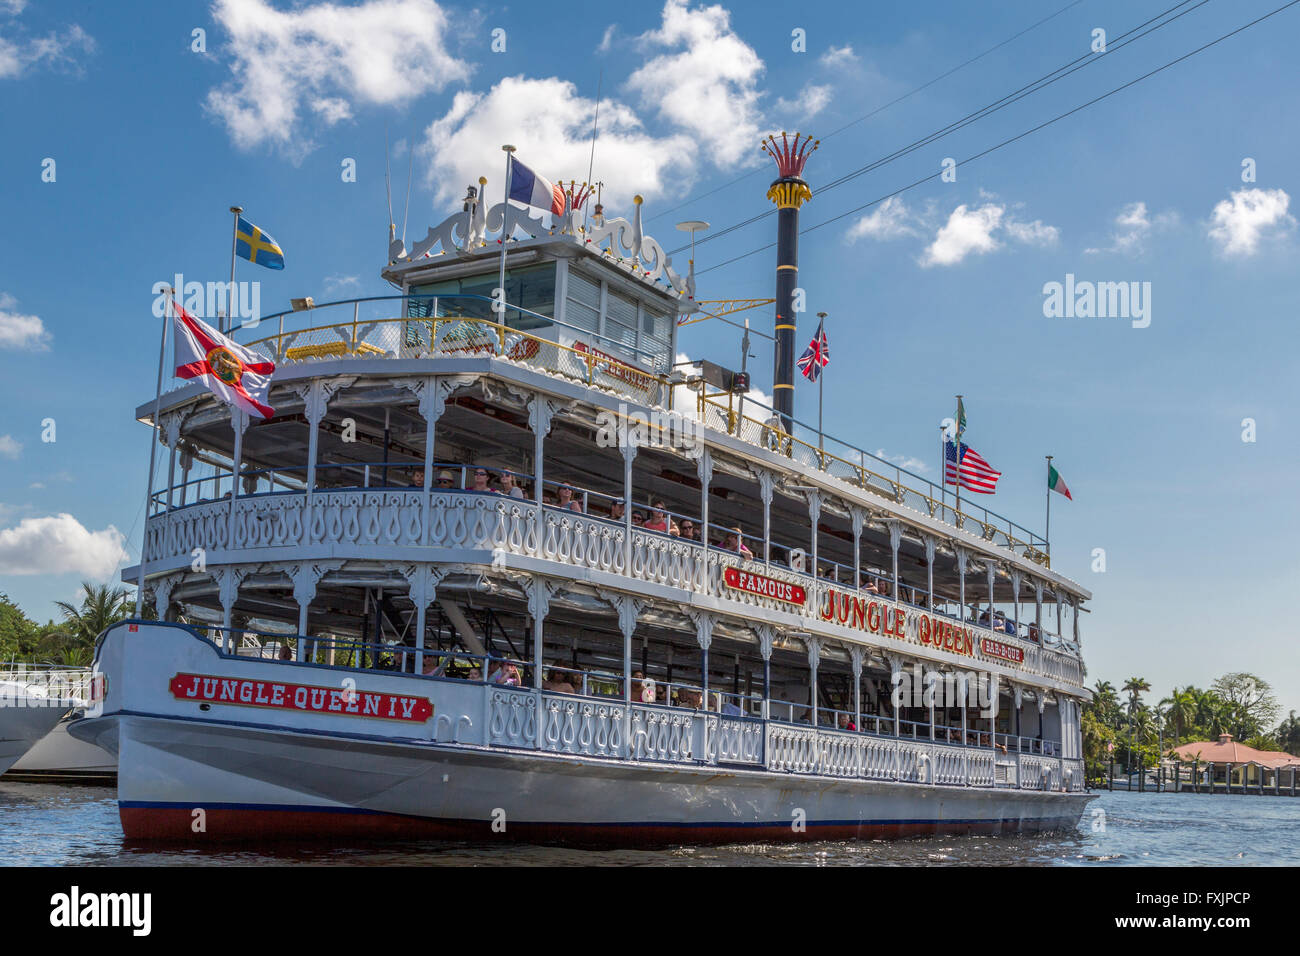 The Jungle Queen pleasure boat offers cruises, sightseeing, and guided tours around the rivers of Ft Lauderdale - Stock Image